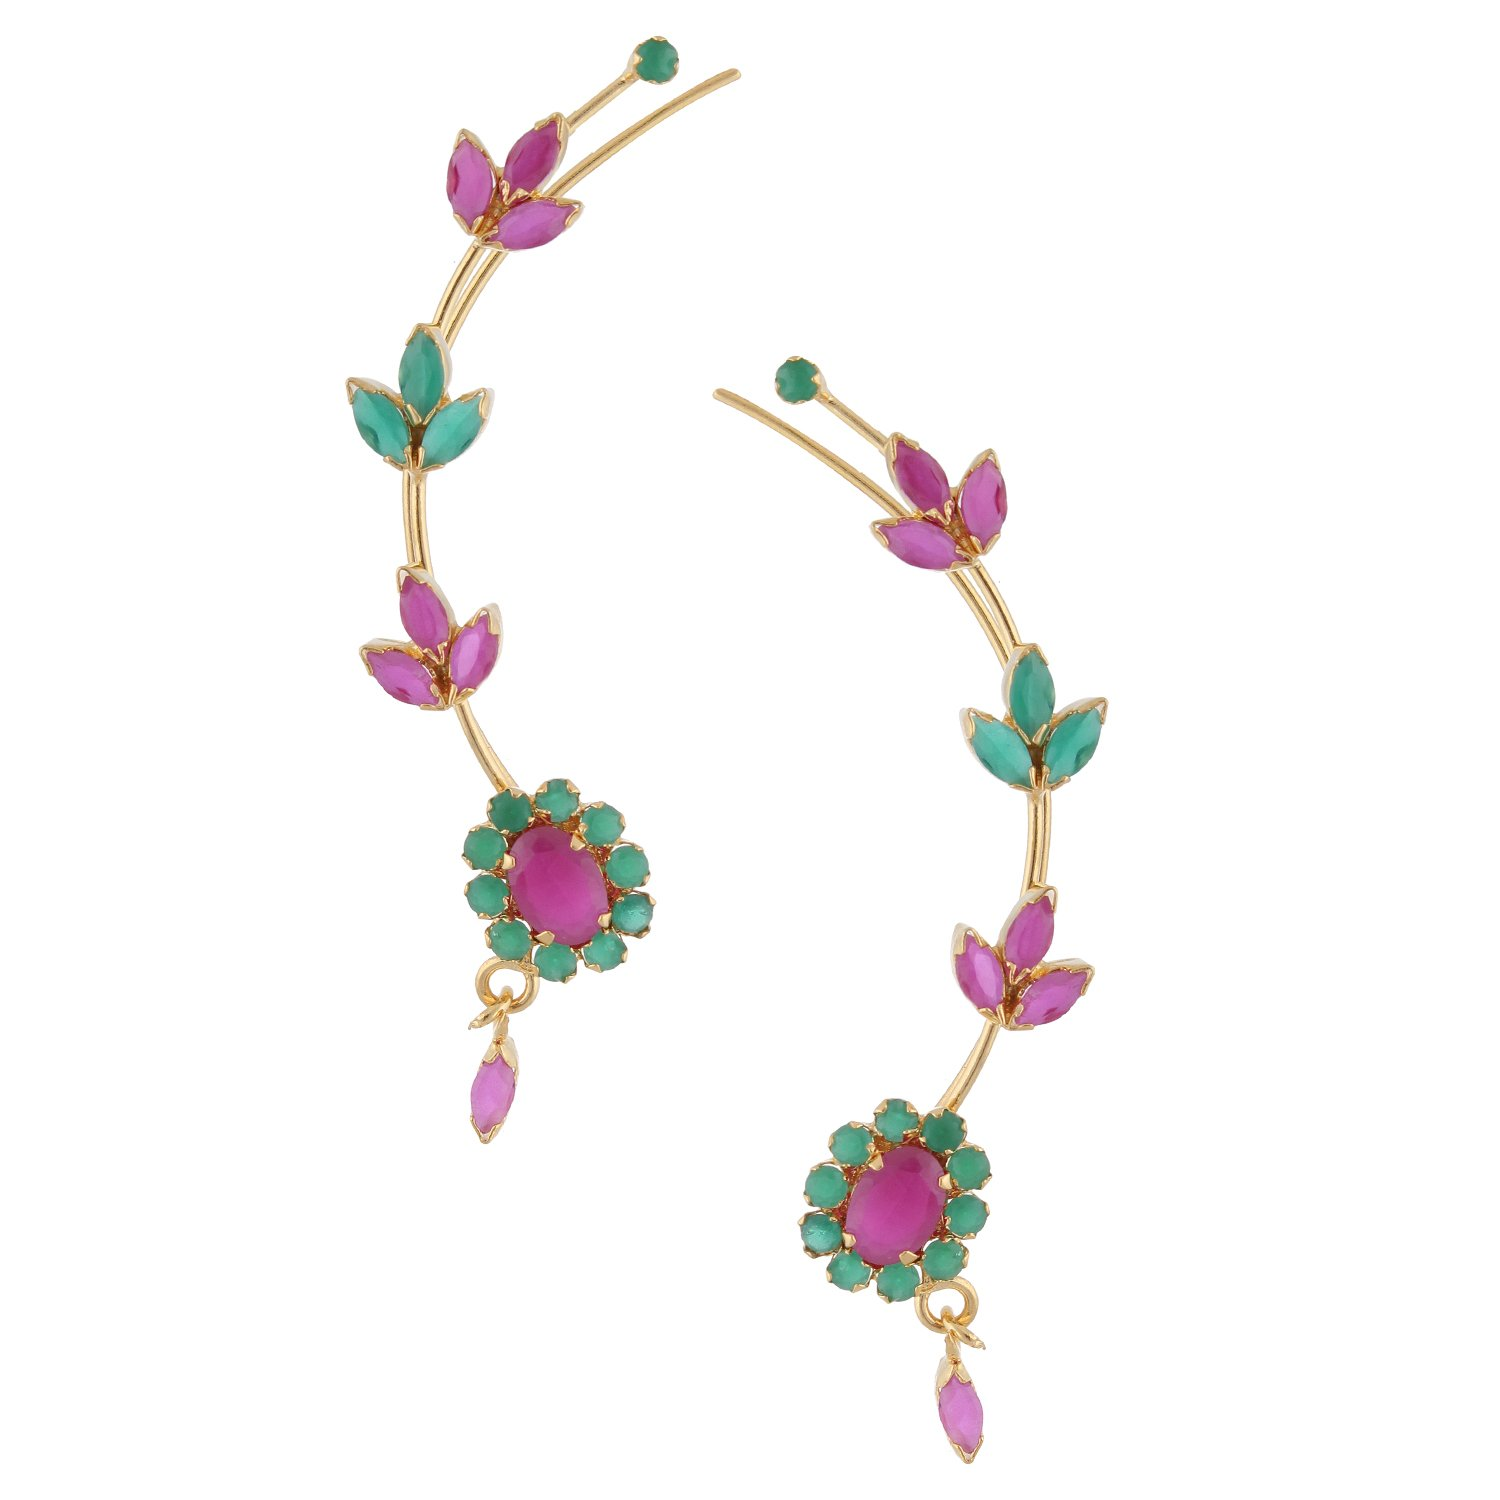 Efulgenz Ear cuffs Cubic Zirconia Halo Flower Leaf Climber Crawler Cartilage Clip on Faux Ruby Emerald Cuff Wrap Earrings